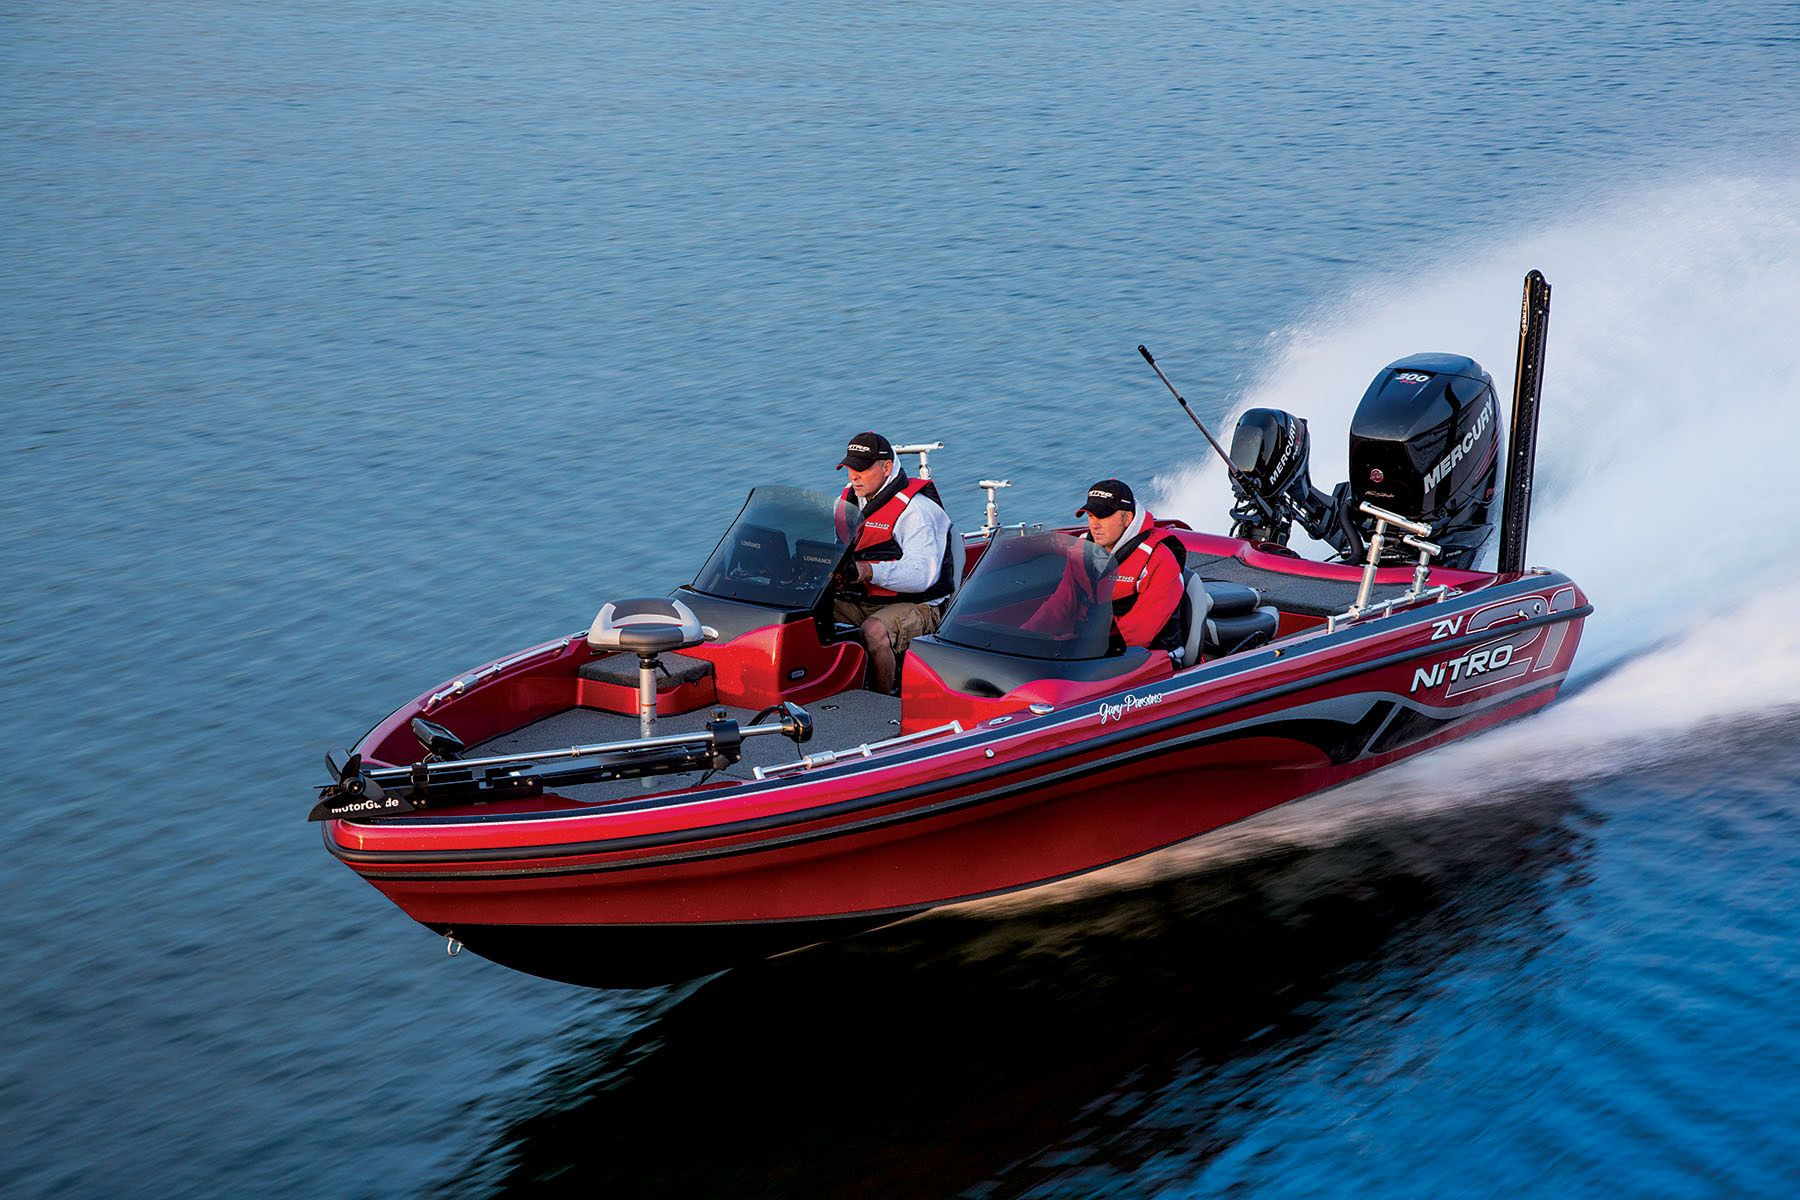 Aggressive Performance Deep V Hull Design To Take On Rough Waters Http Www Exclusiveautomarine Com Product Zv 21 Bass Boat Fishing Boats Boat